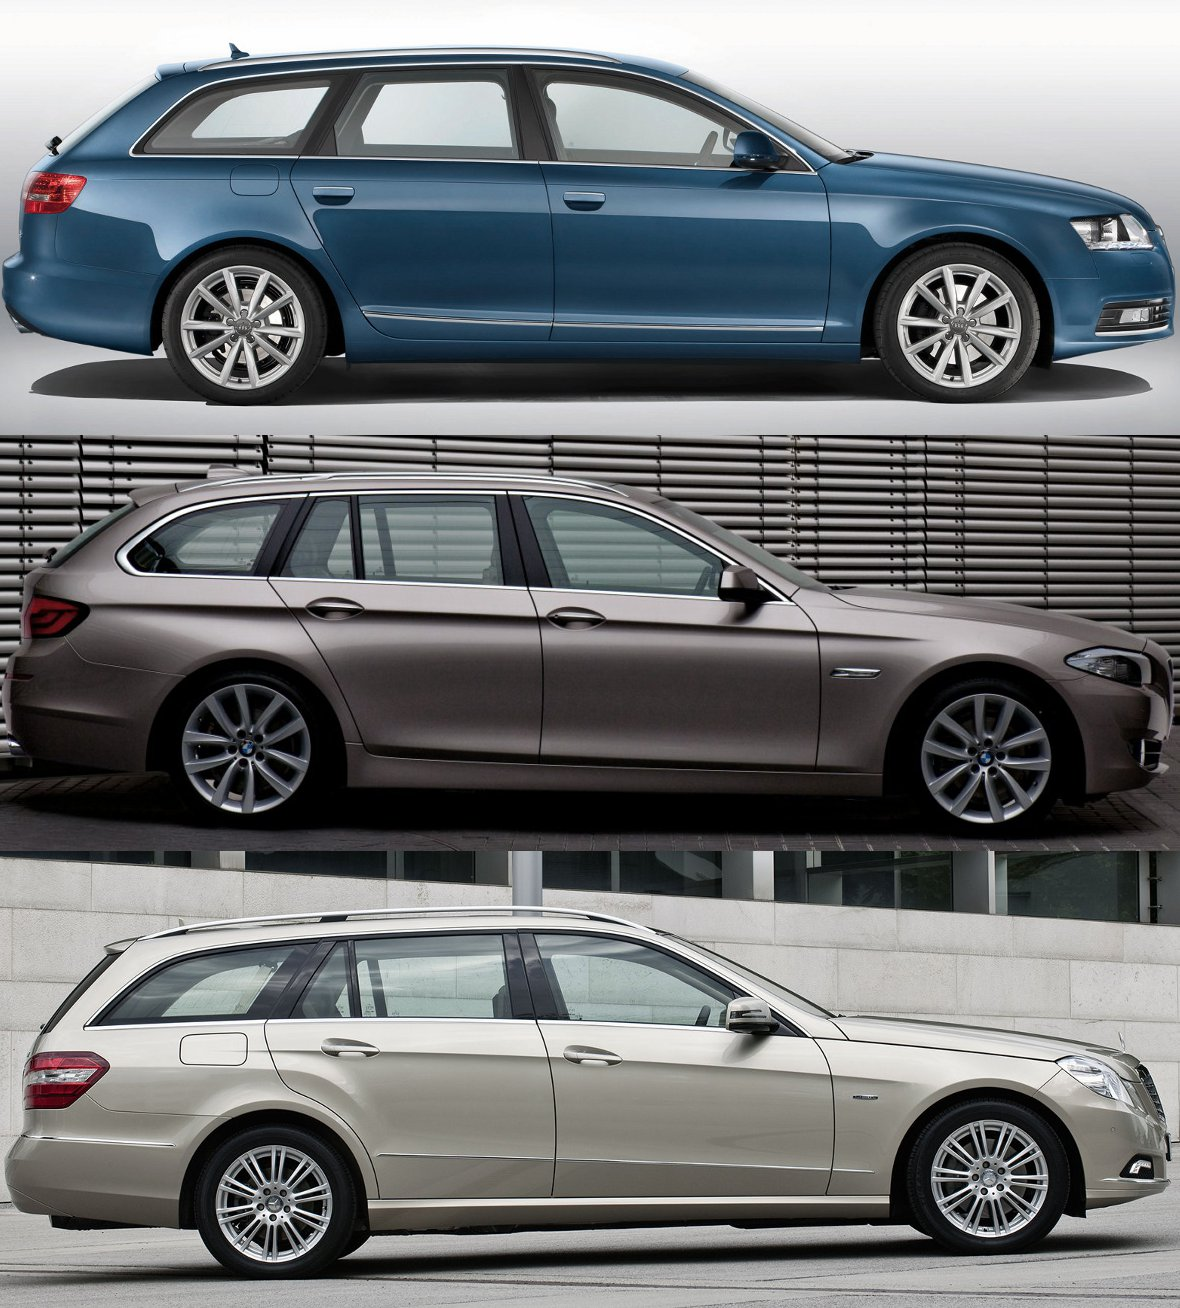 Photo Comparison: F11 BMW 5 Series Touring, Audi A6 Avant